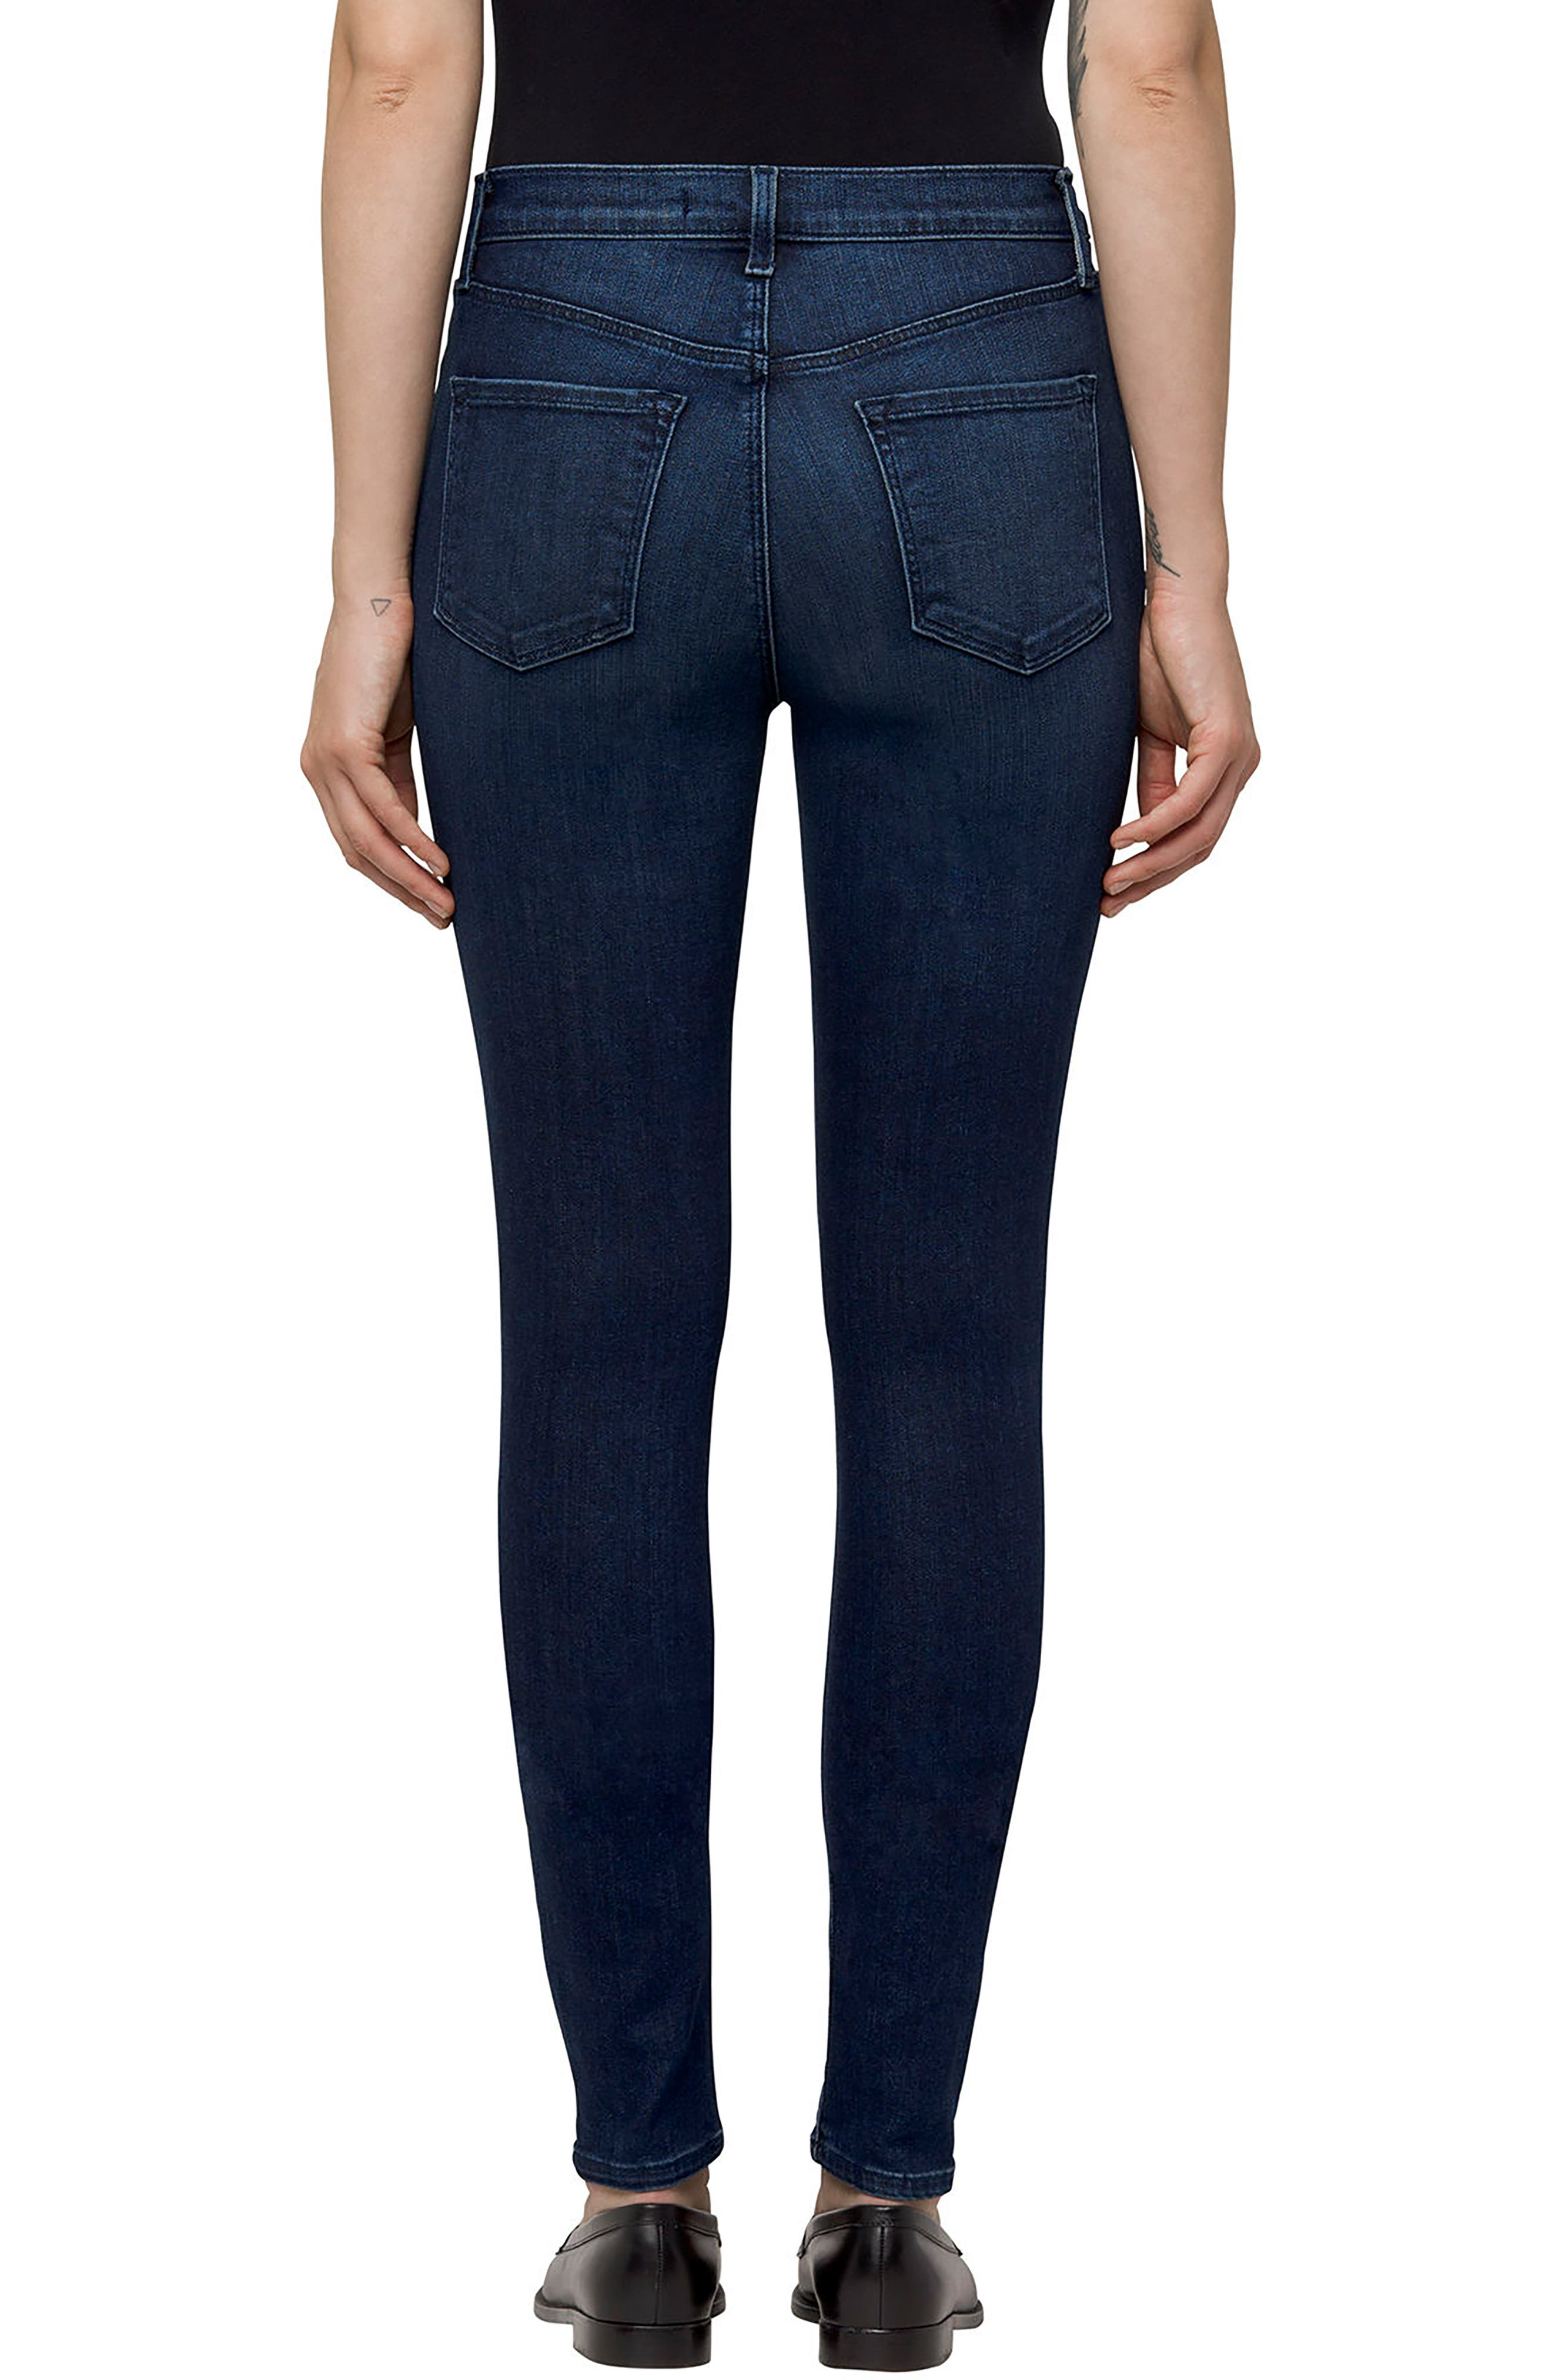 Maria High Waist Skinny Jeans,                             Alternate thumbnail 2, color,                             413